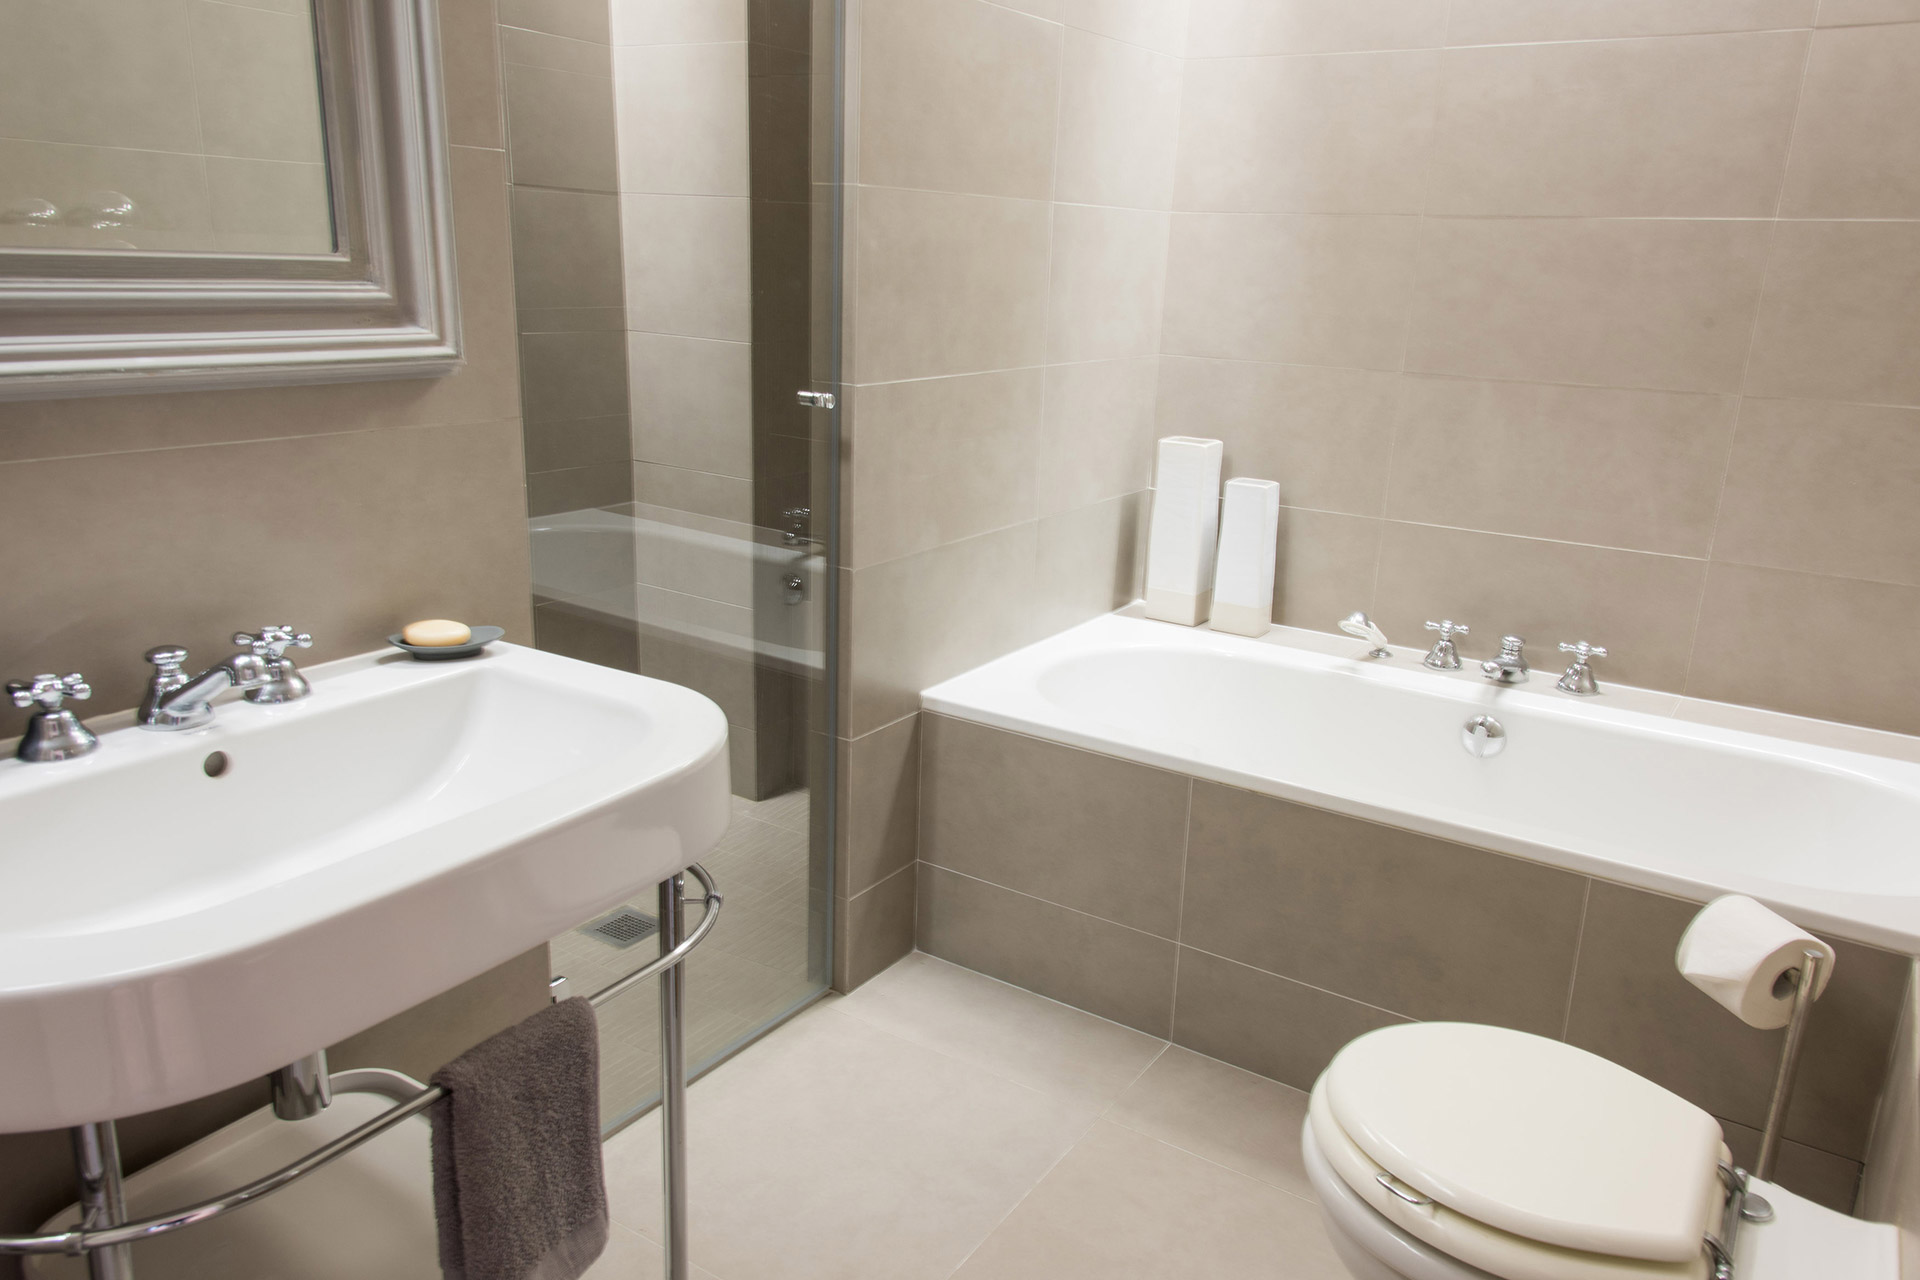 Bathtub, shower, double sink and toilet